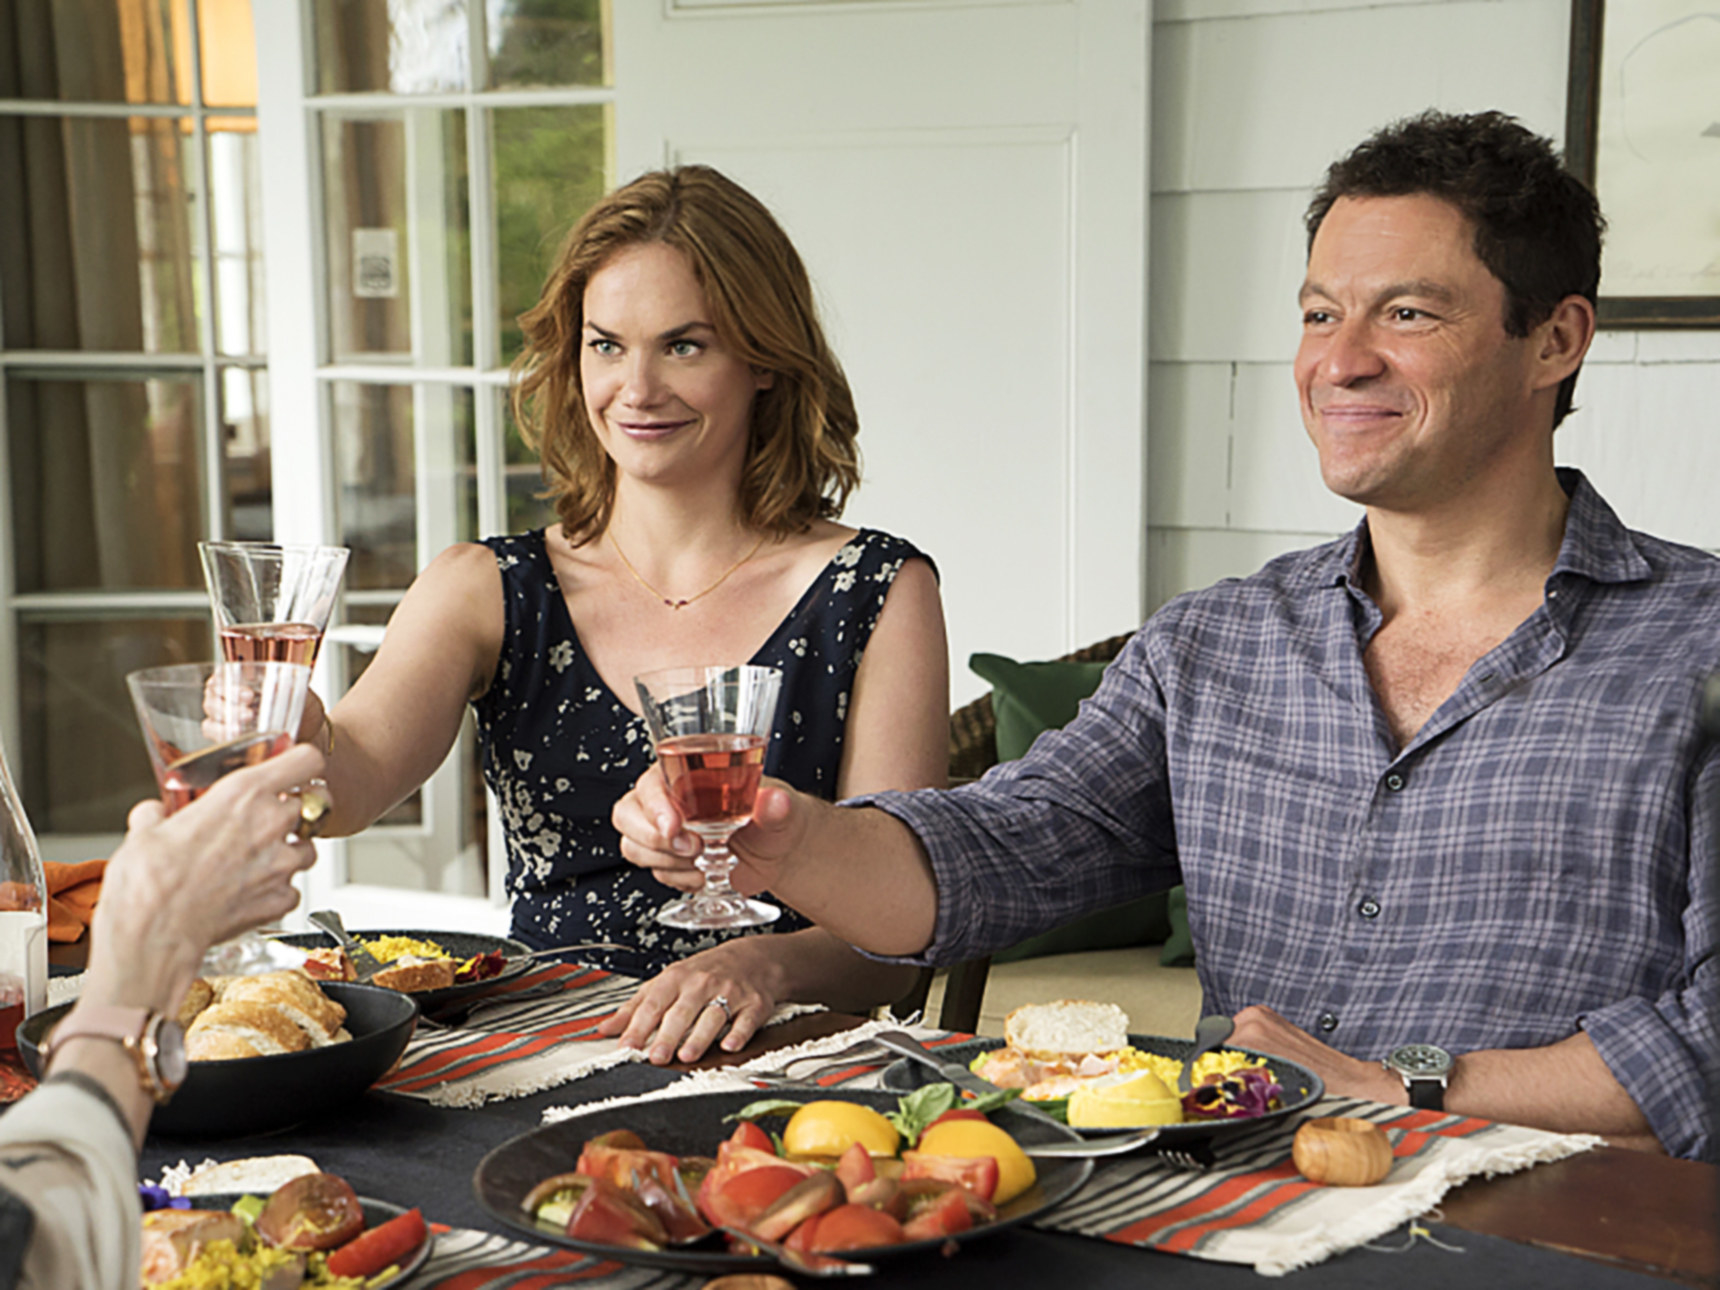 Ruth Wilson and Dominic West raise glasses at a table